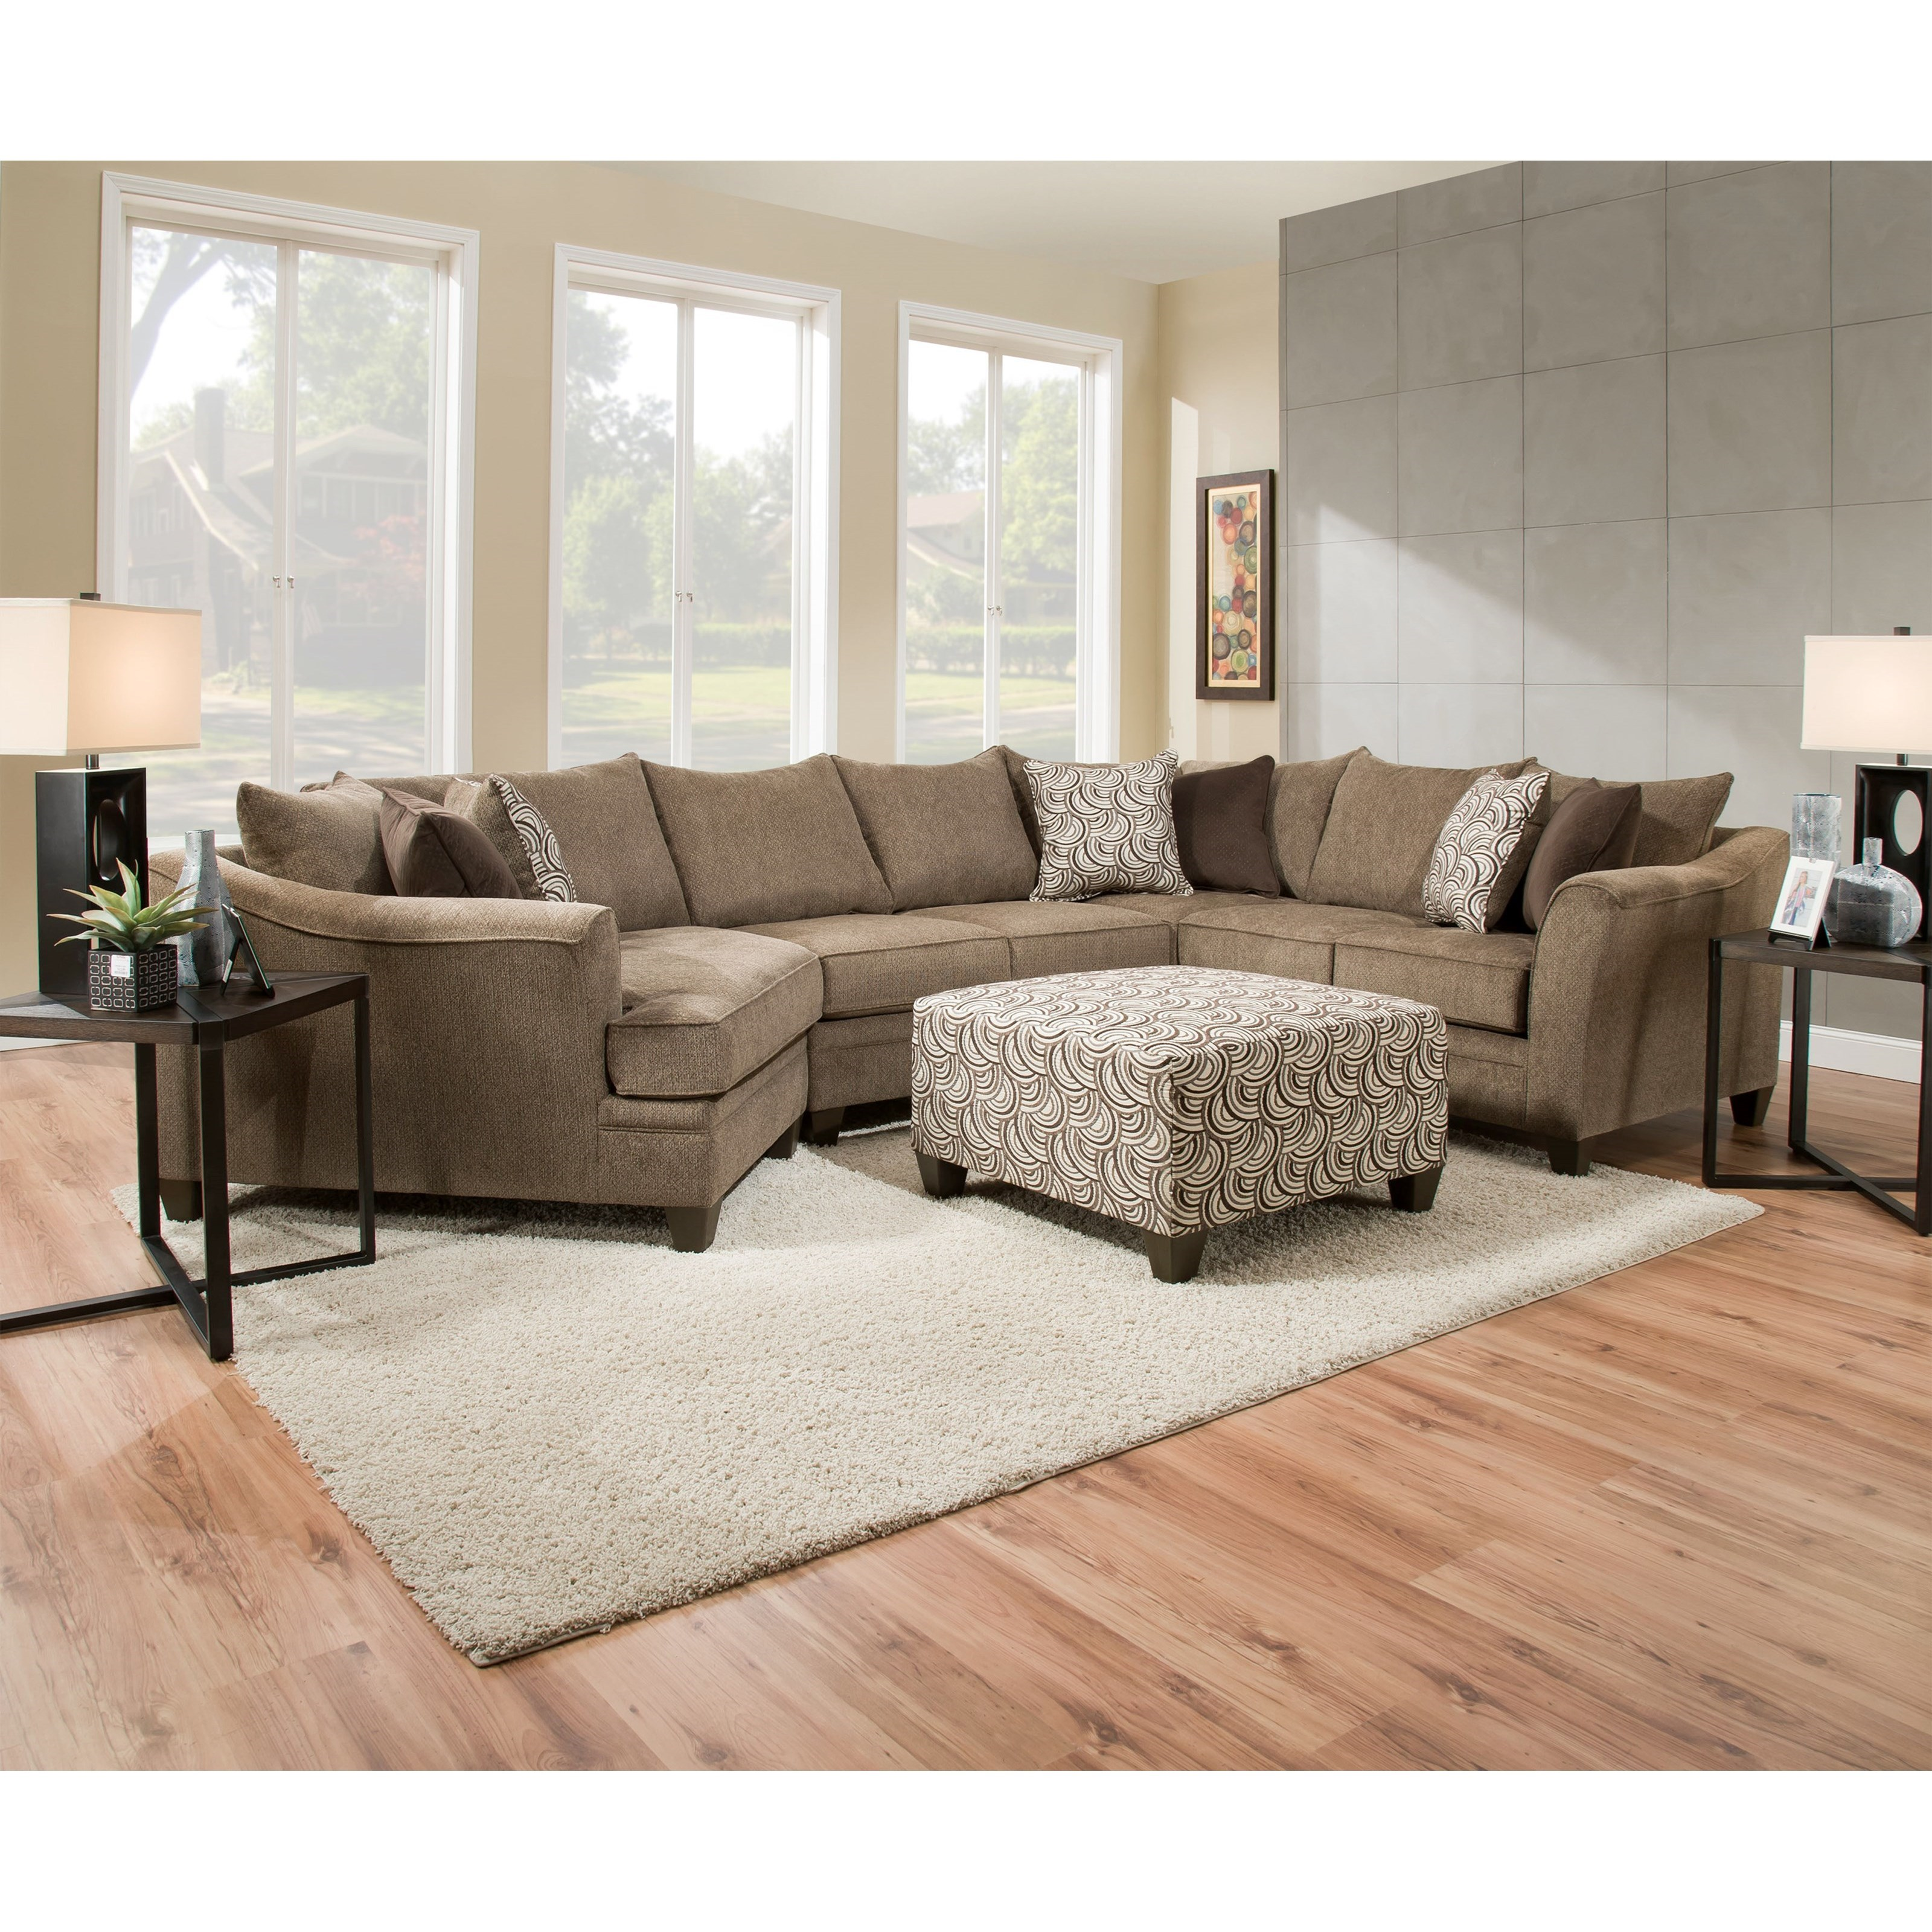 Kiara Transitional Sectional Sofa by Umber at EFO Furniture Outlet